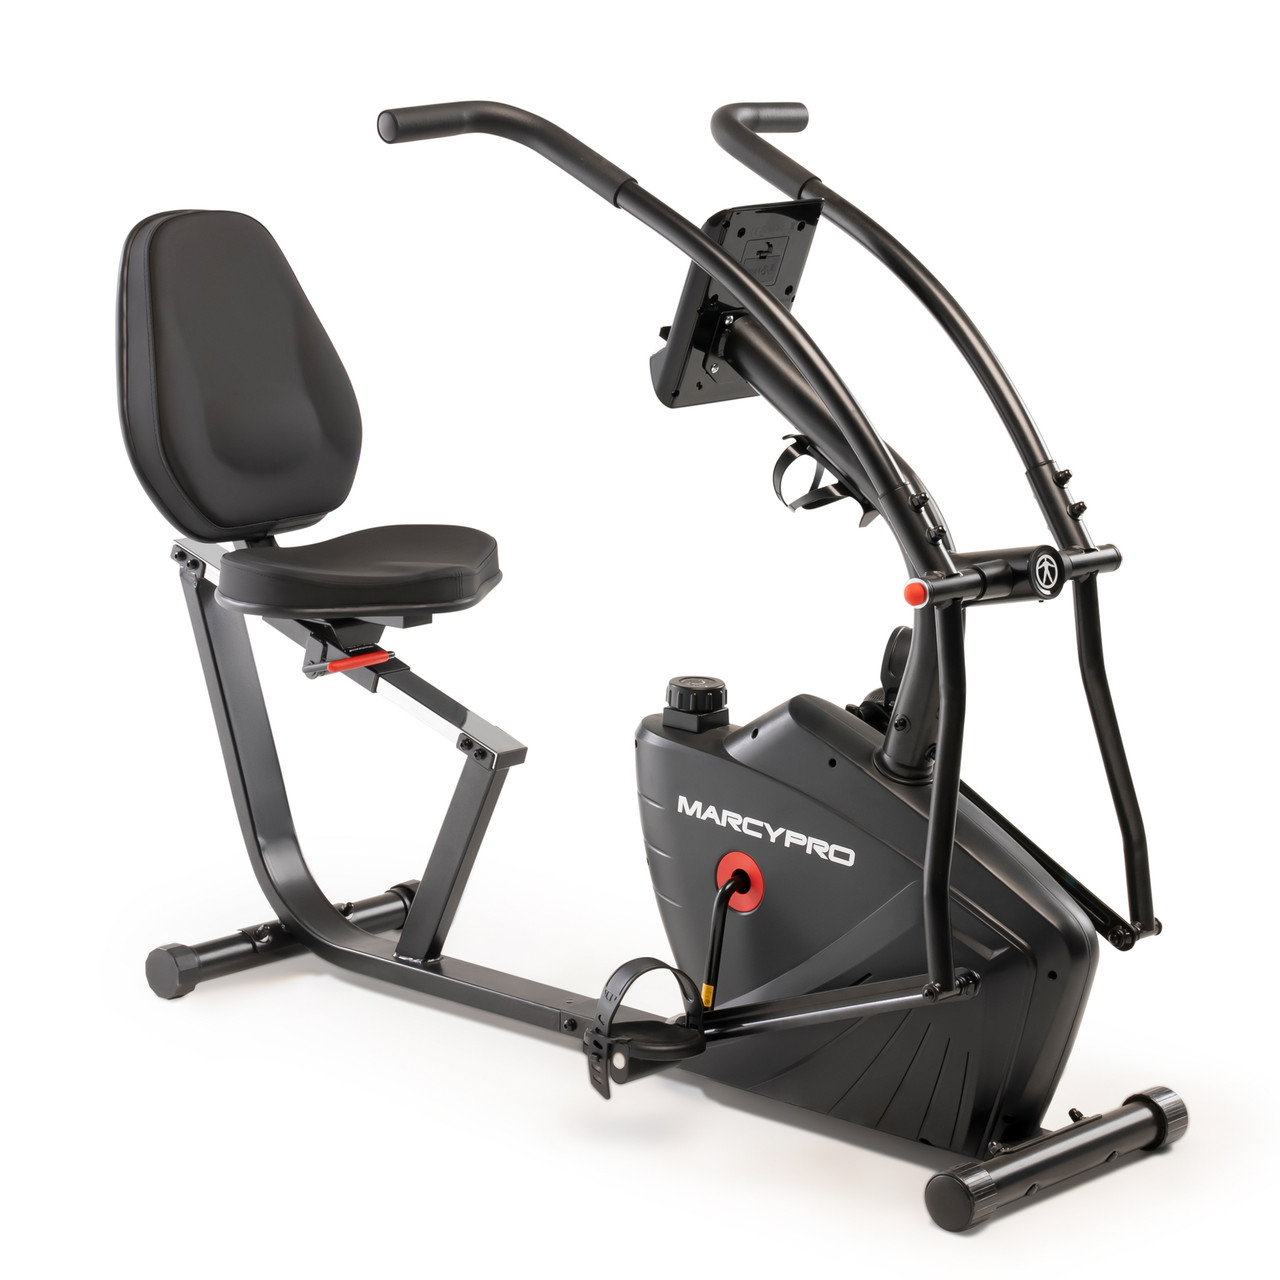 Comfortable Seat pad on the Dual Action Recumbent Bike